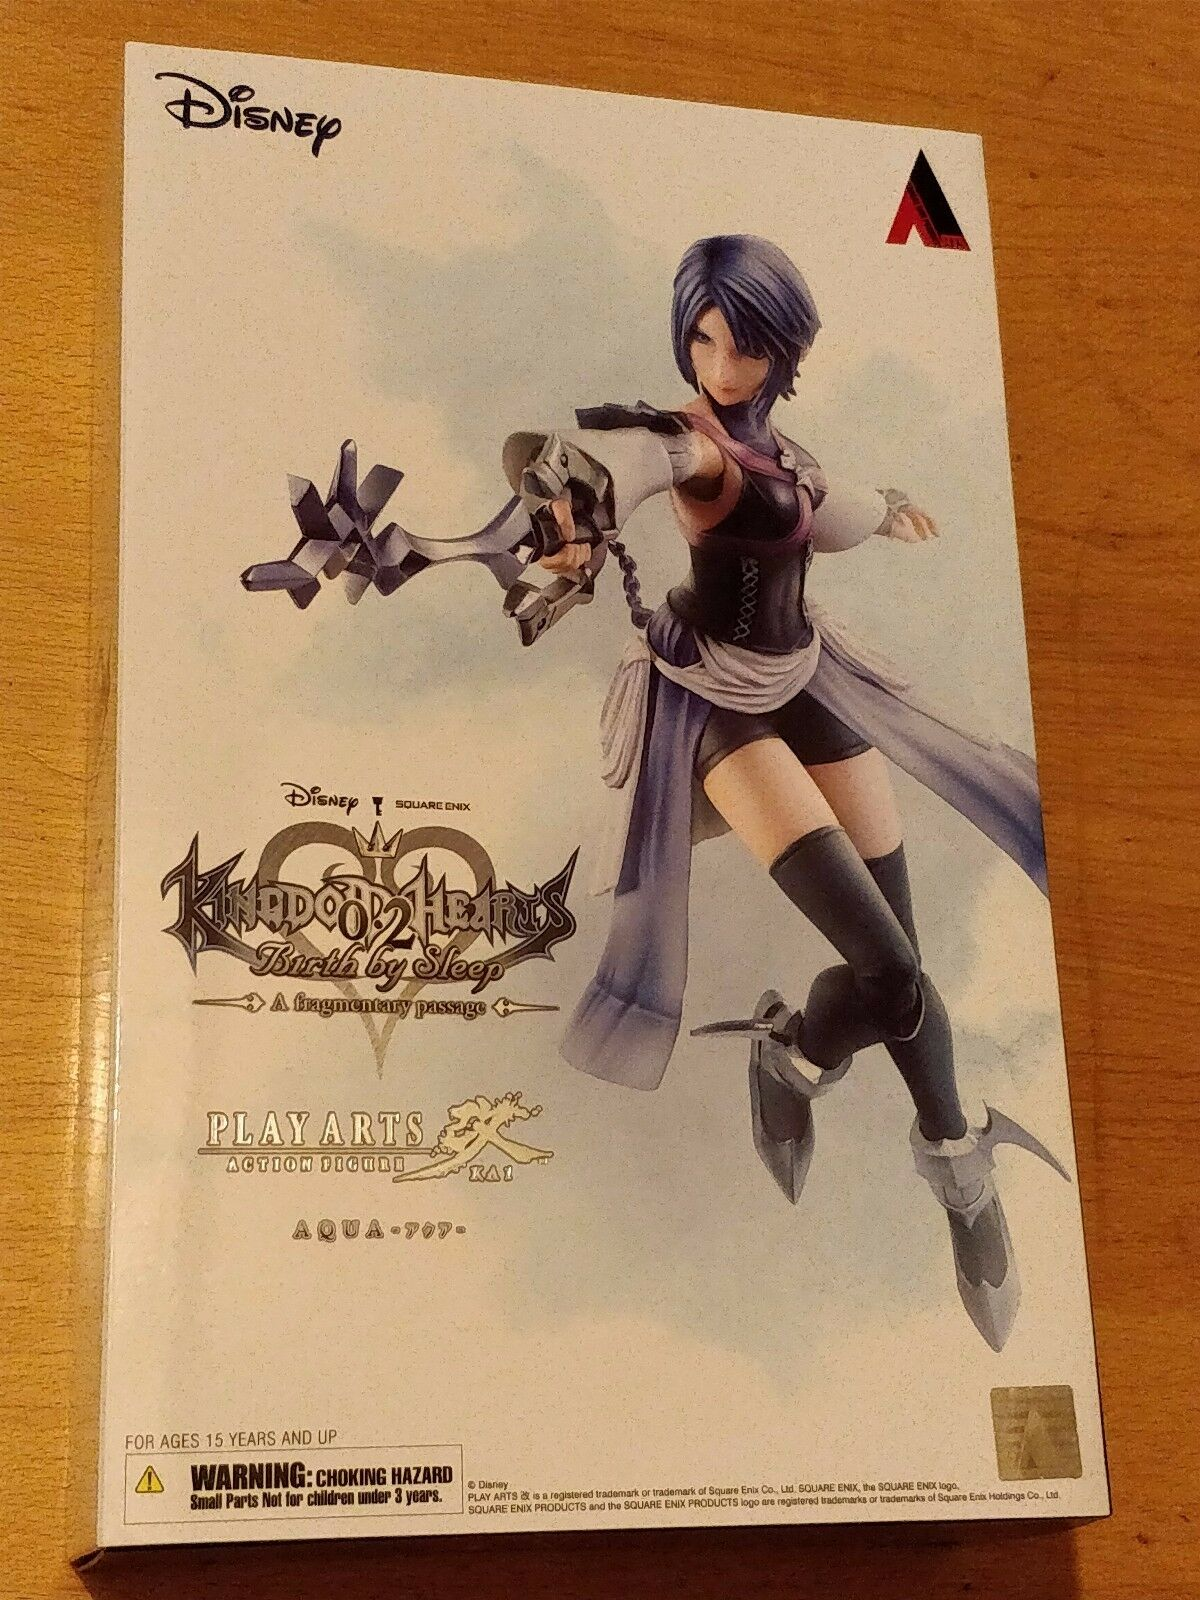 KINGDOM HEARTS 0.2 BIRTH BY SLEEP AQUA PLAY ARTS ARTS ARTS KAI FIGURE - NEW AND SEALED d14d58